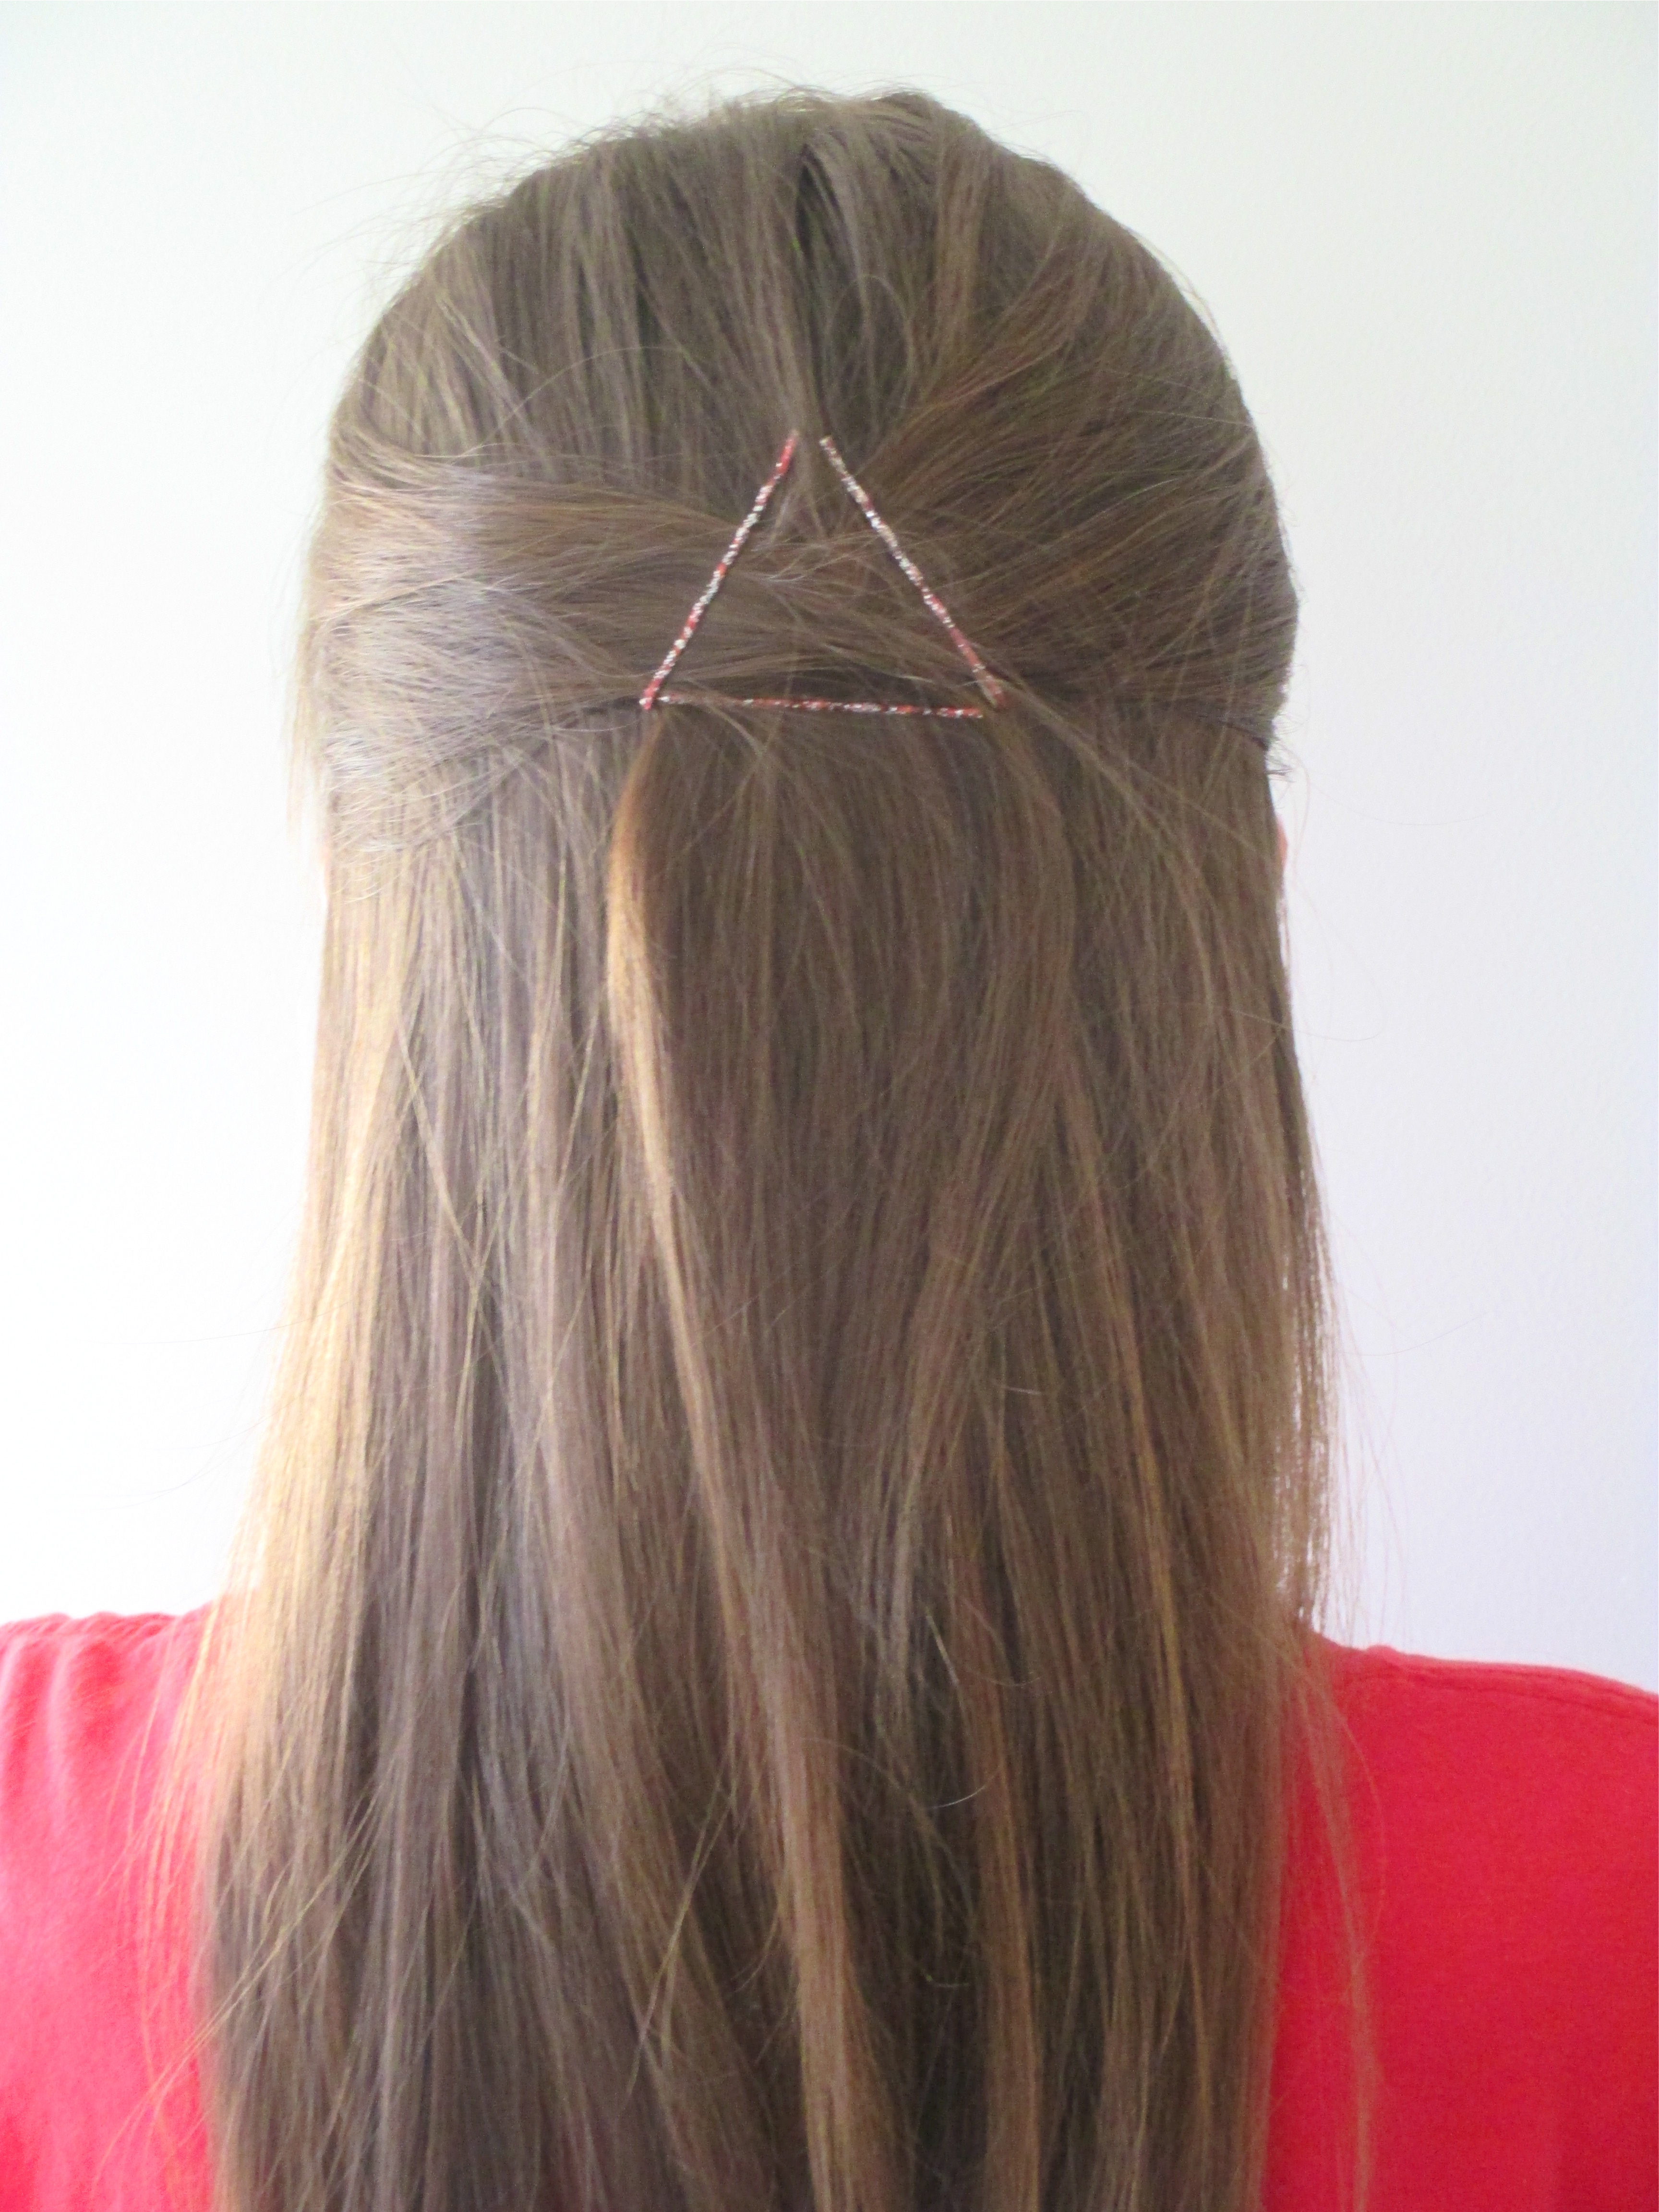 5 Cute And Easy Bobby Pin Hairstyles Using Fewer Than 5 Bobby Pins For One Sided Short Hairstyles (View 21 of 25)